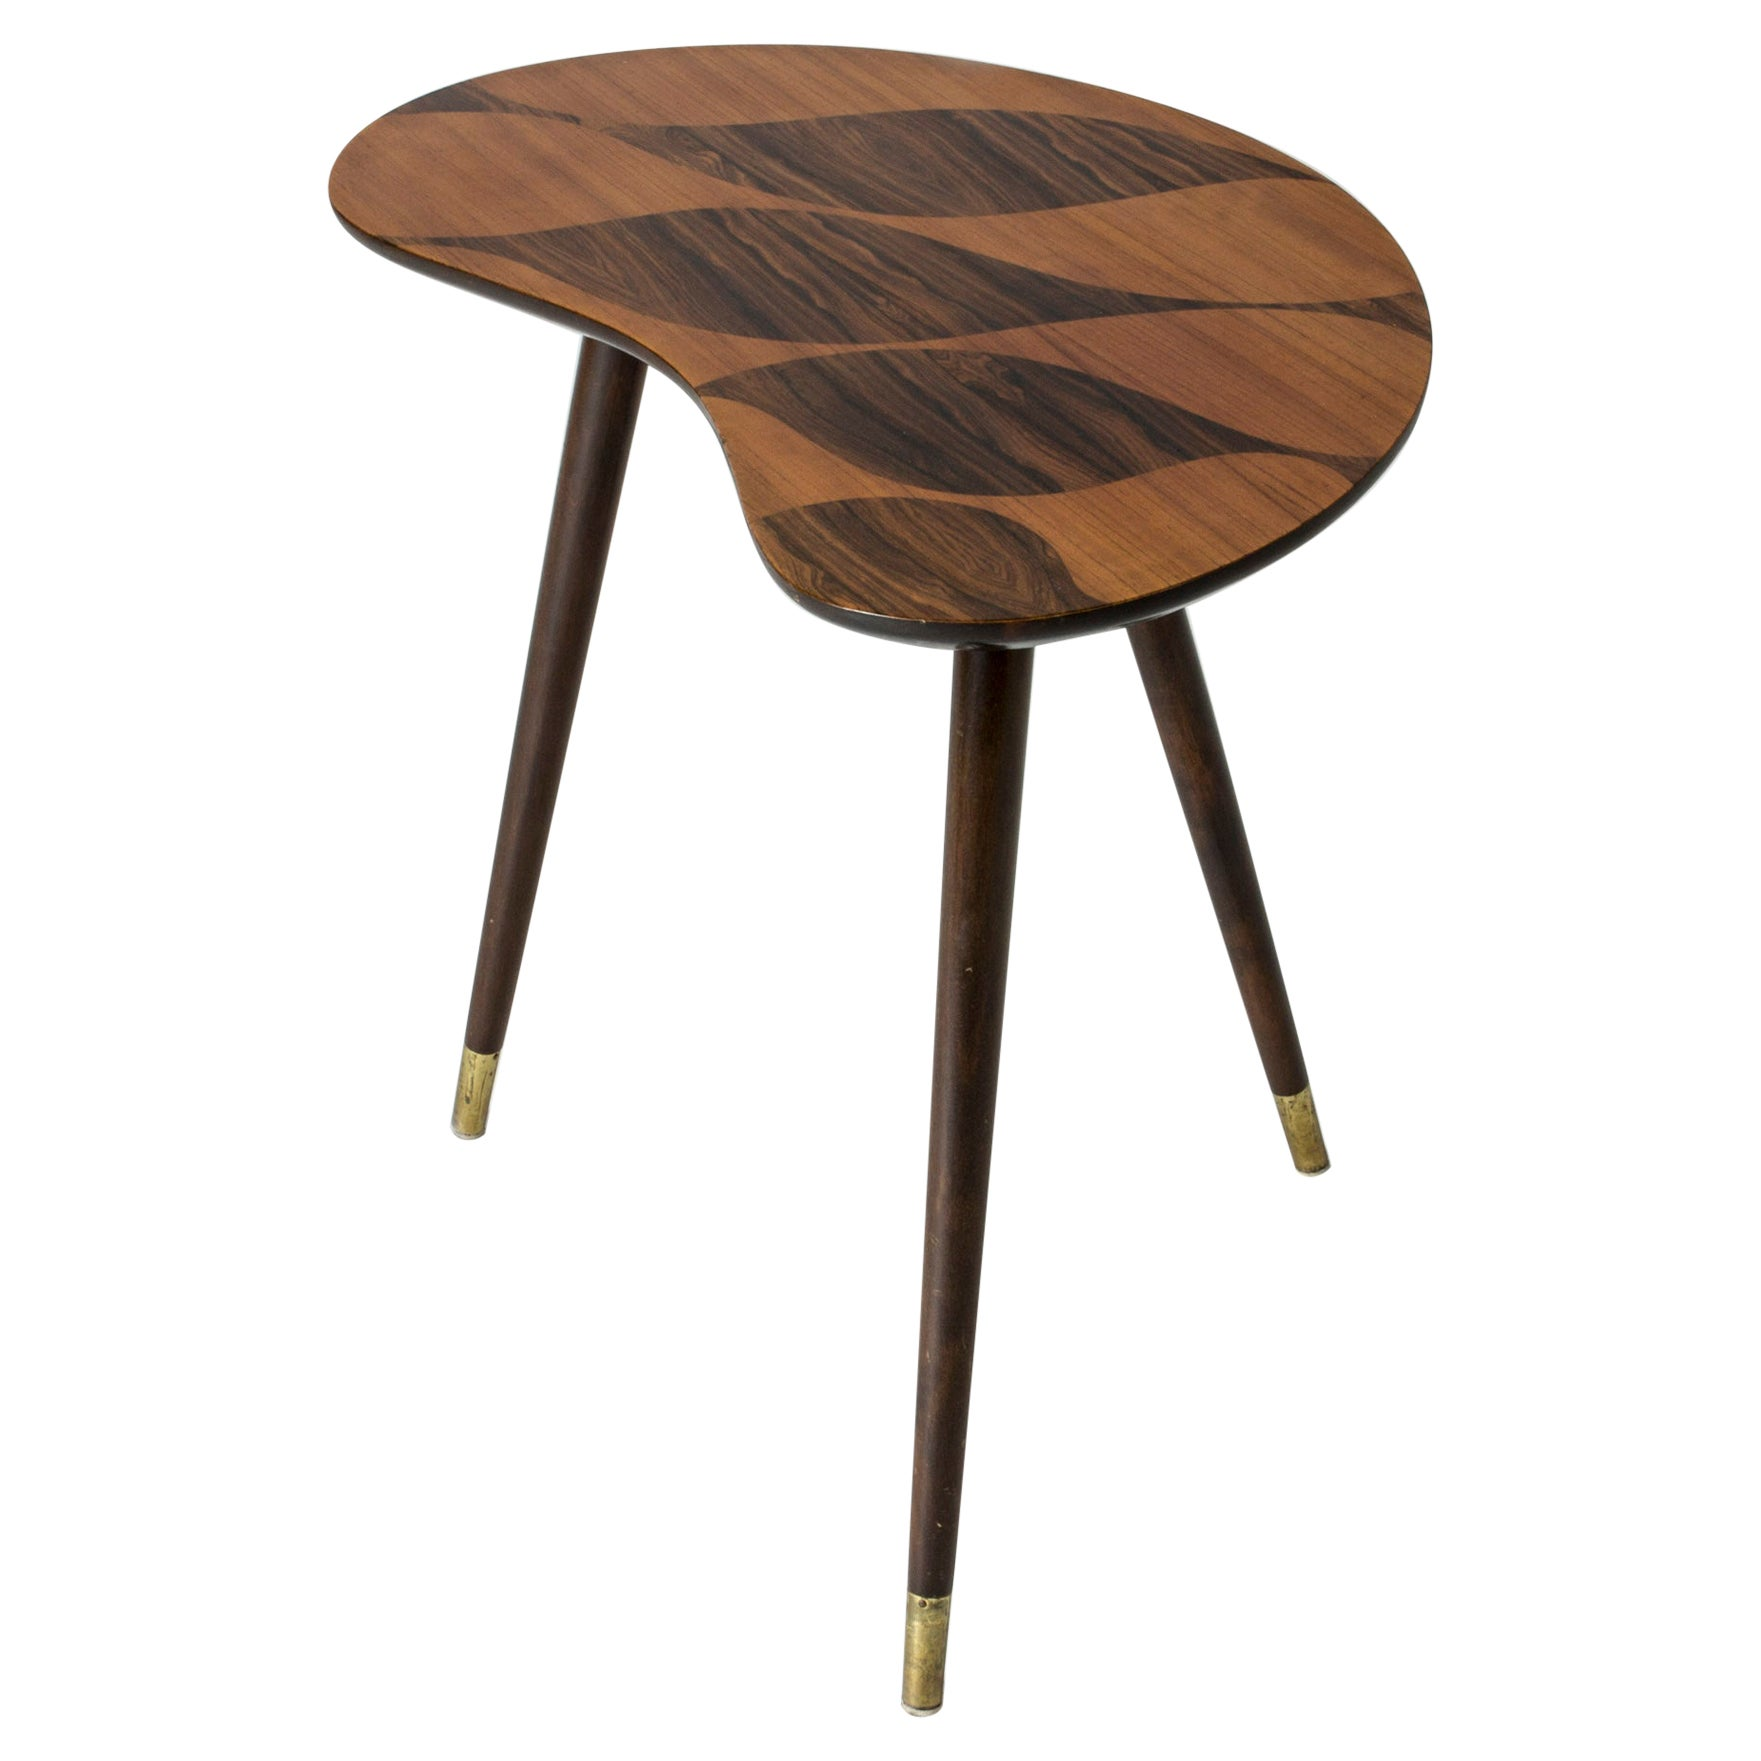 Organic Swedish Midcentury Coffee/Occasional Table with Inlaid Wood